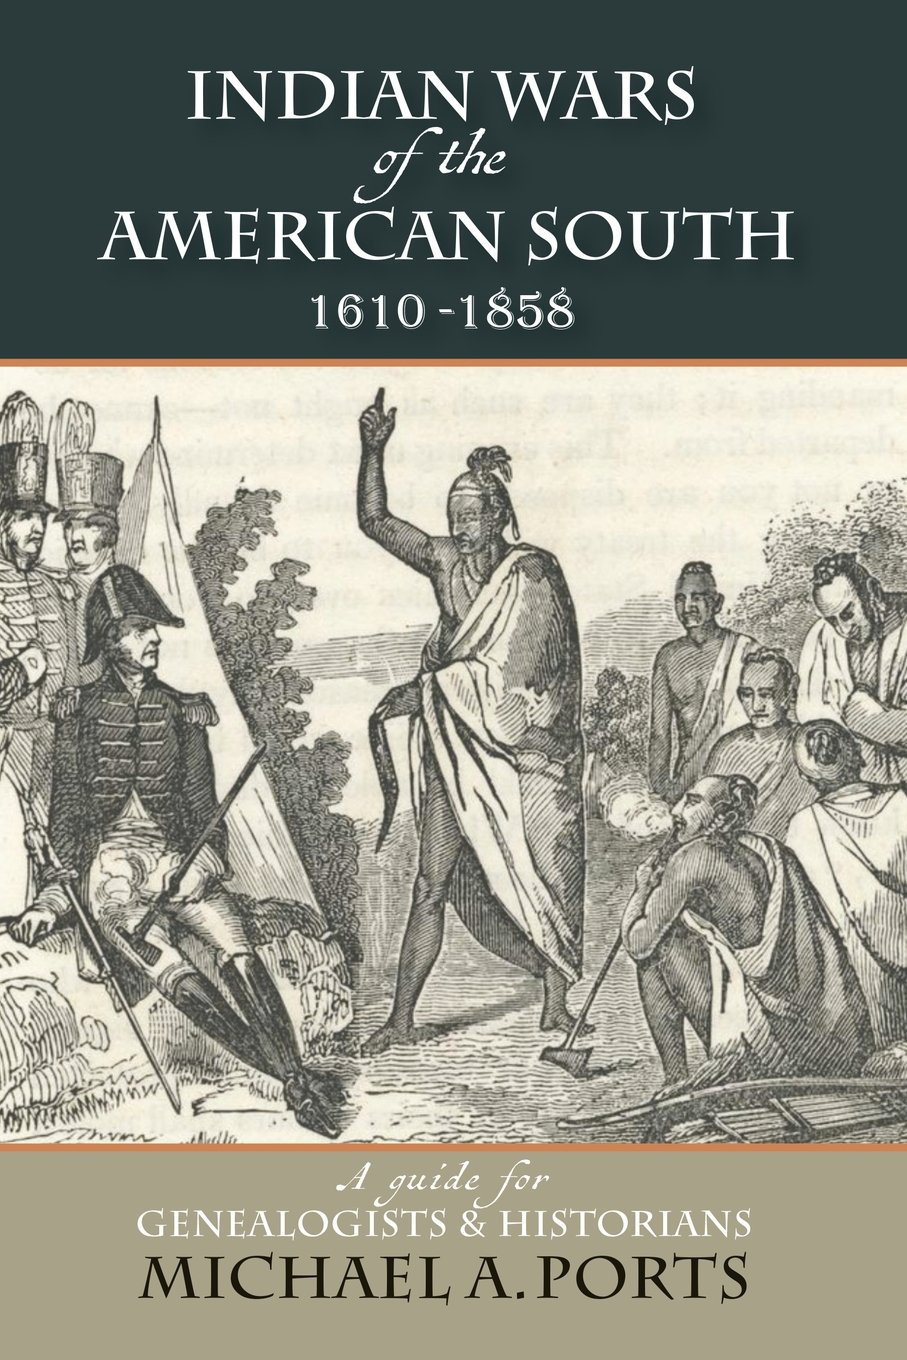 Indian Wars of the American South, 1610-1858: A guide for Genealogists & Historians